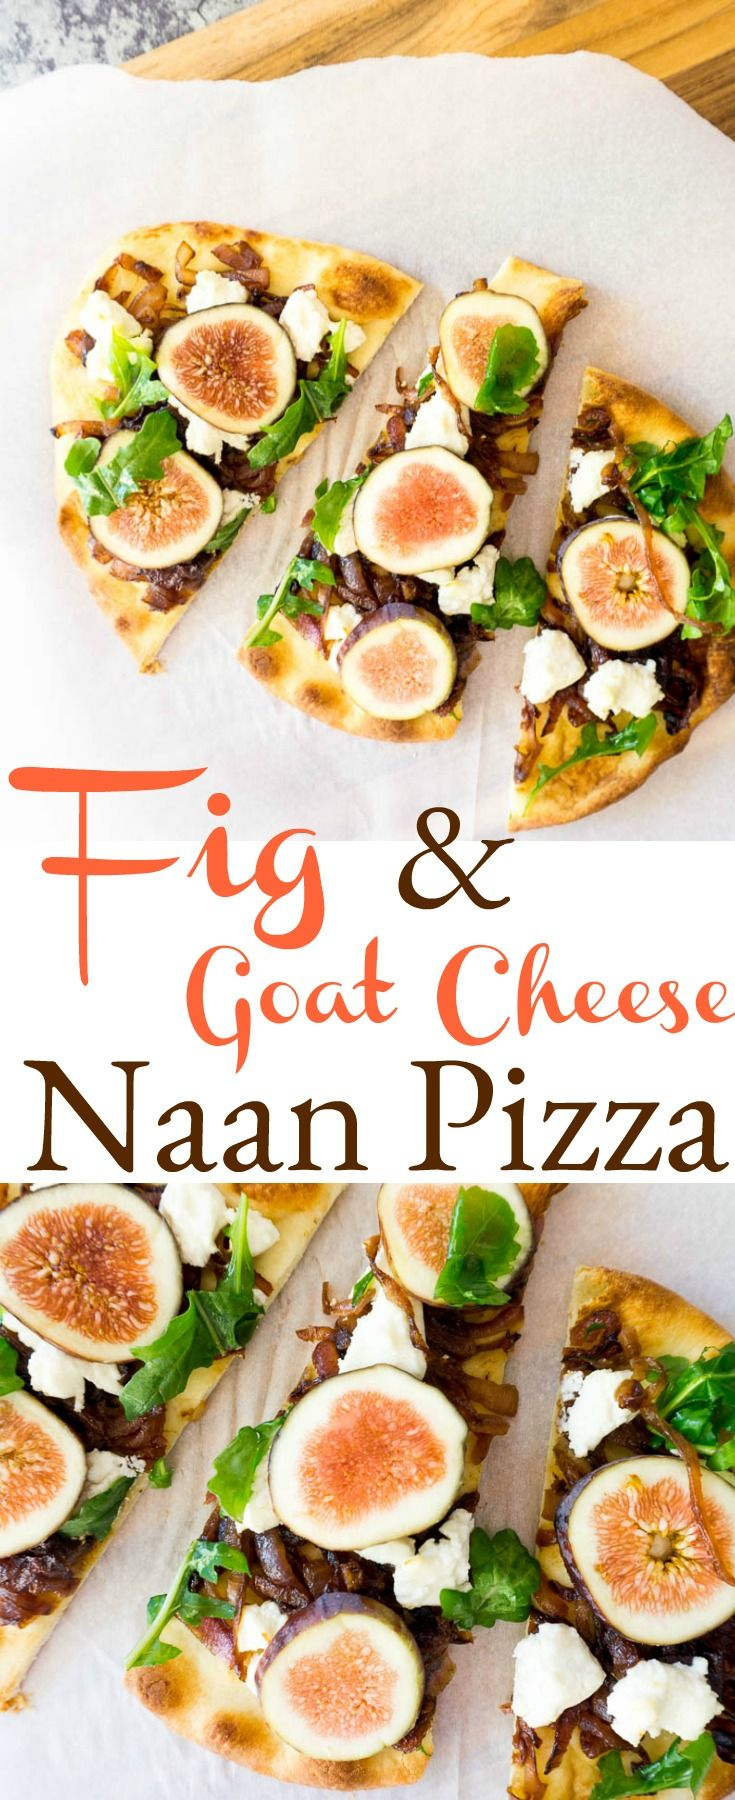 The sweet and savory of this #fig and goat cheese #naan pizza makes it the perfect lunch, appetizer or light dinner that everyone will love.